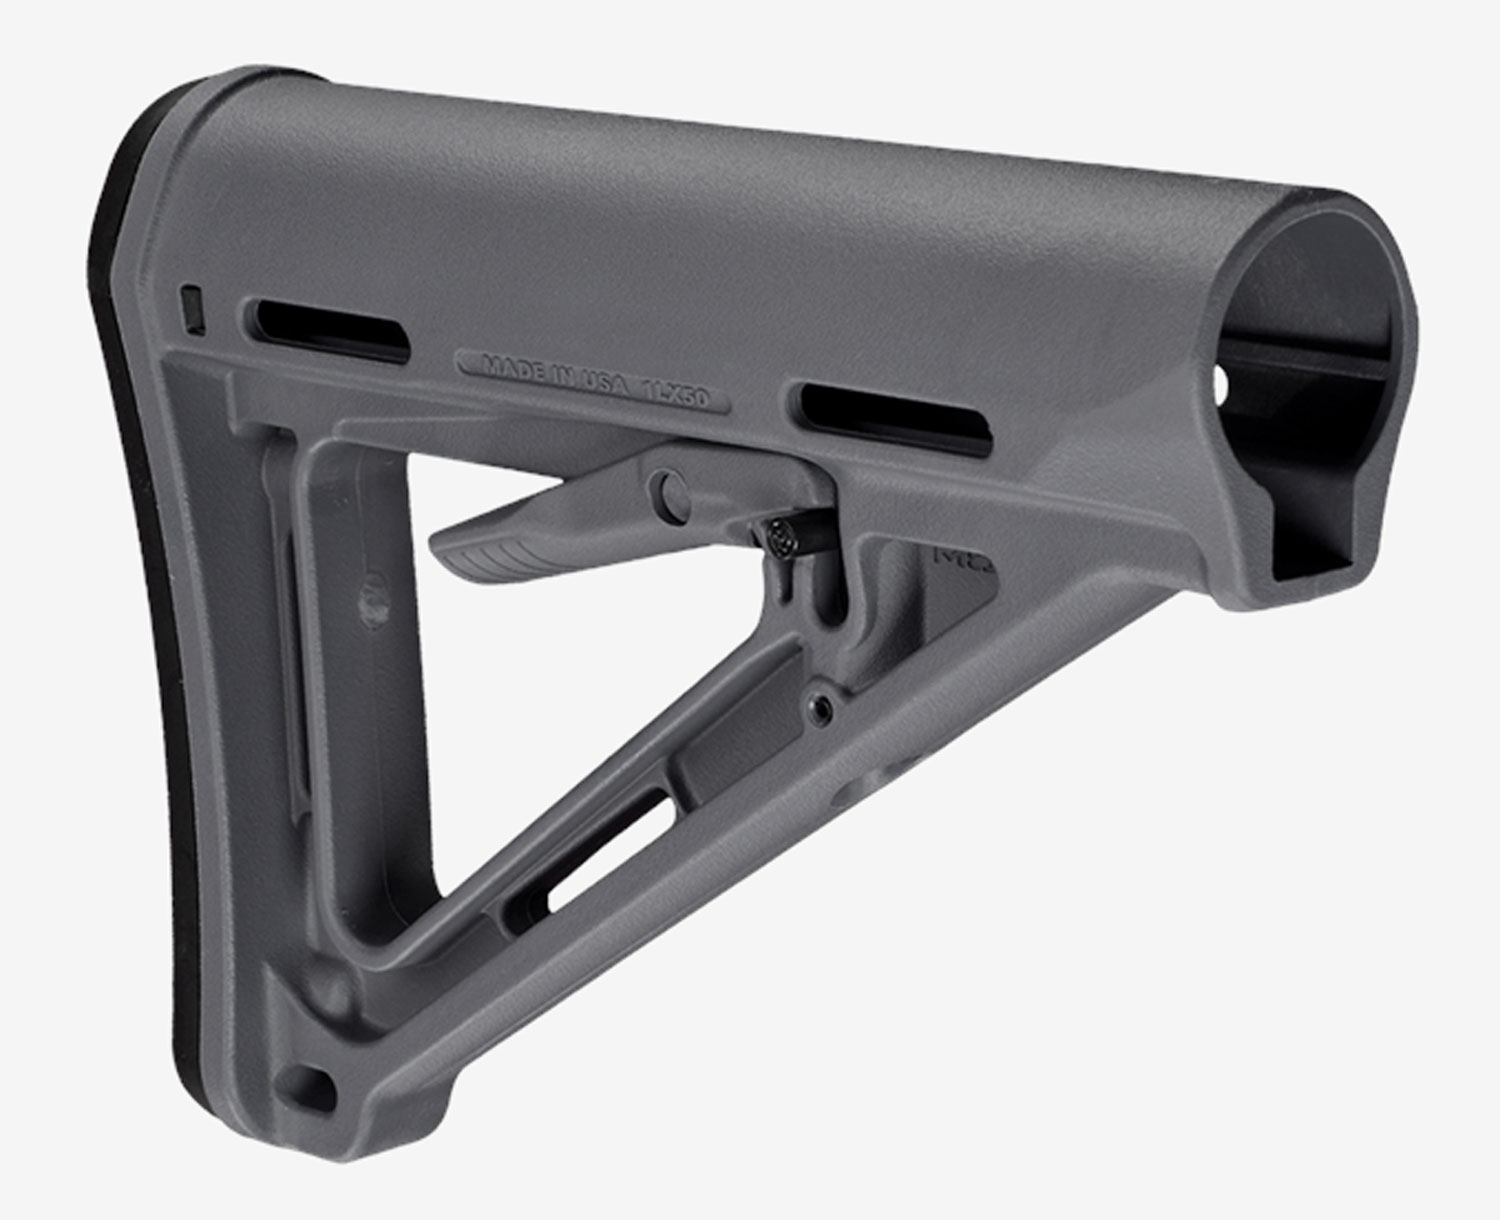 Magpul MAG400-GRY MOE Mil-Spec AR-15 Reinforced Polymer Gray